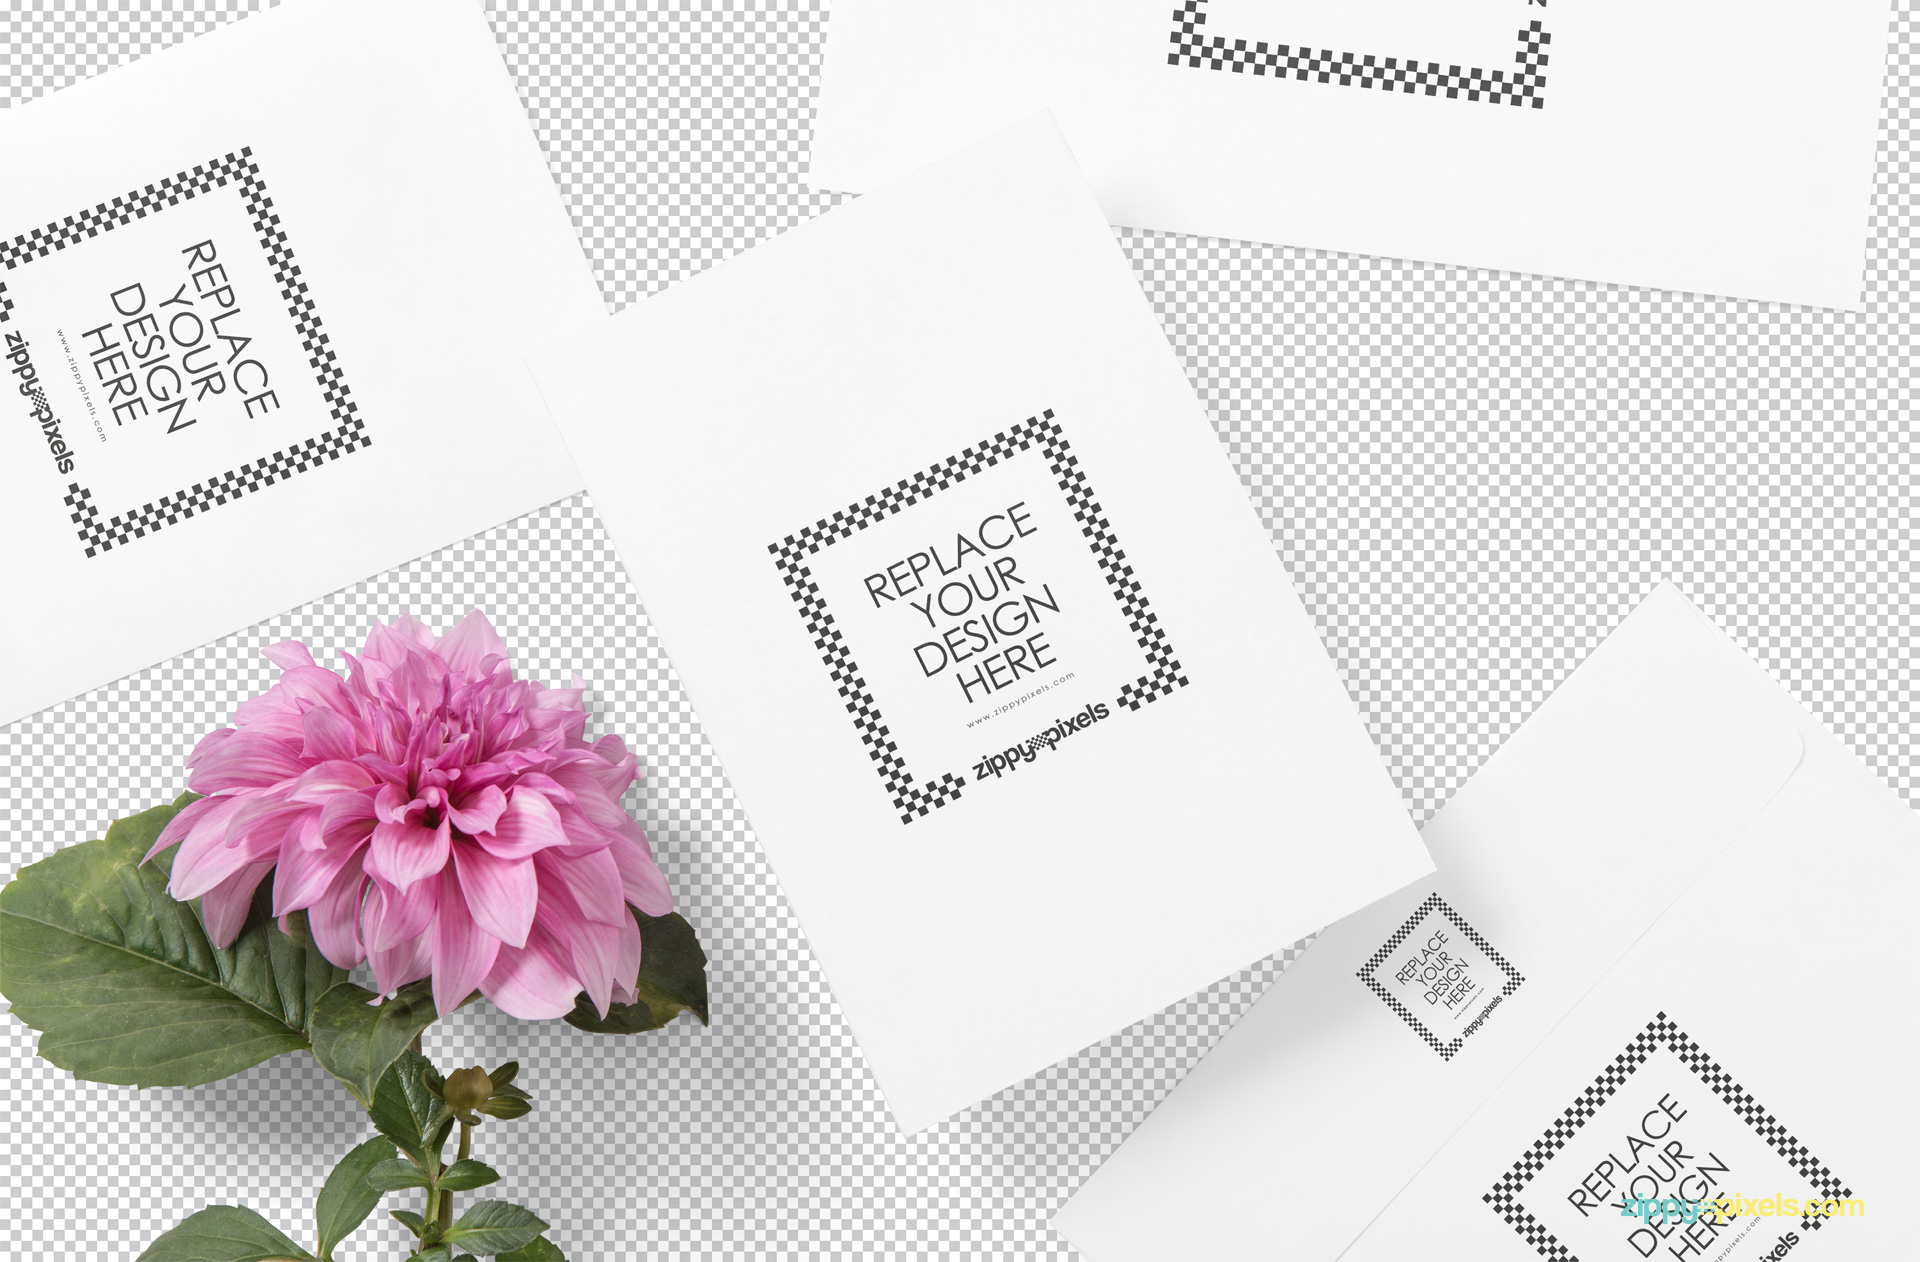 Customizable plain cards placed on greyscale.